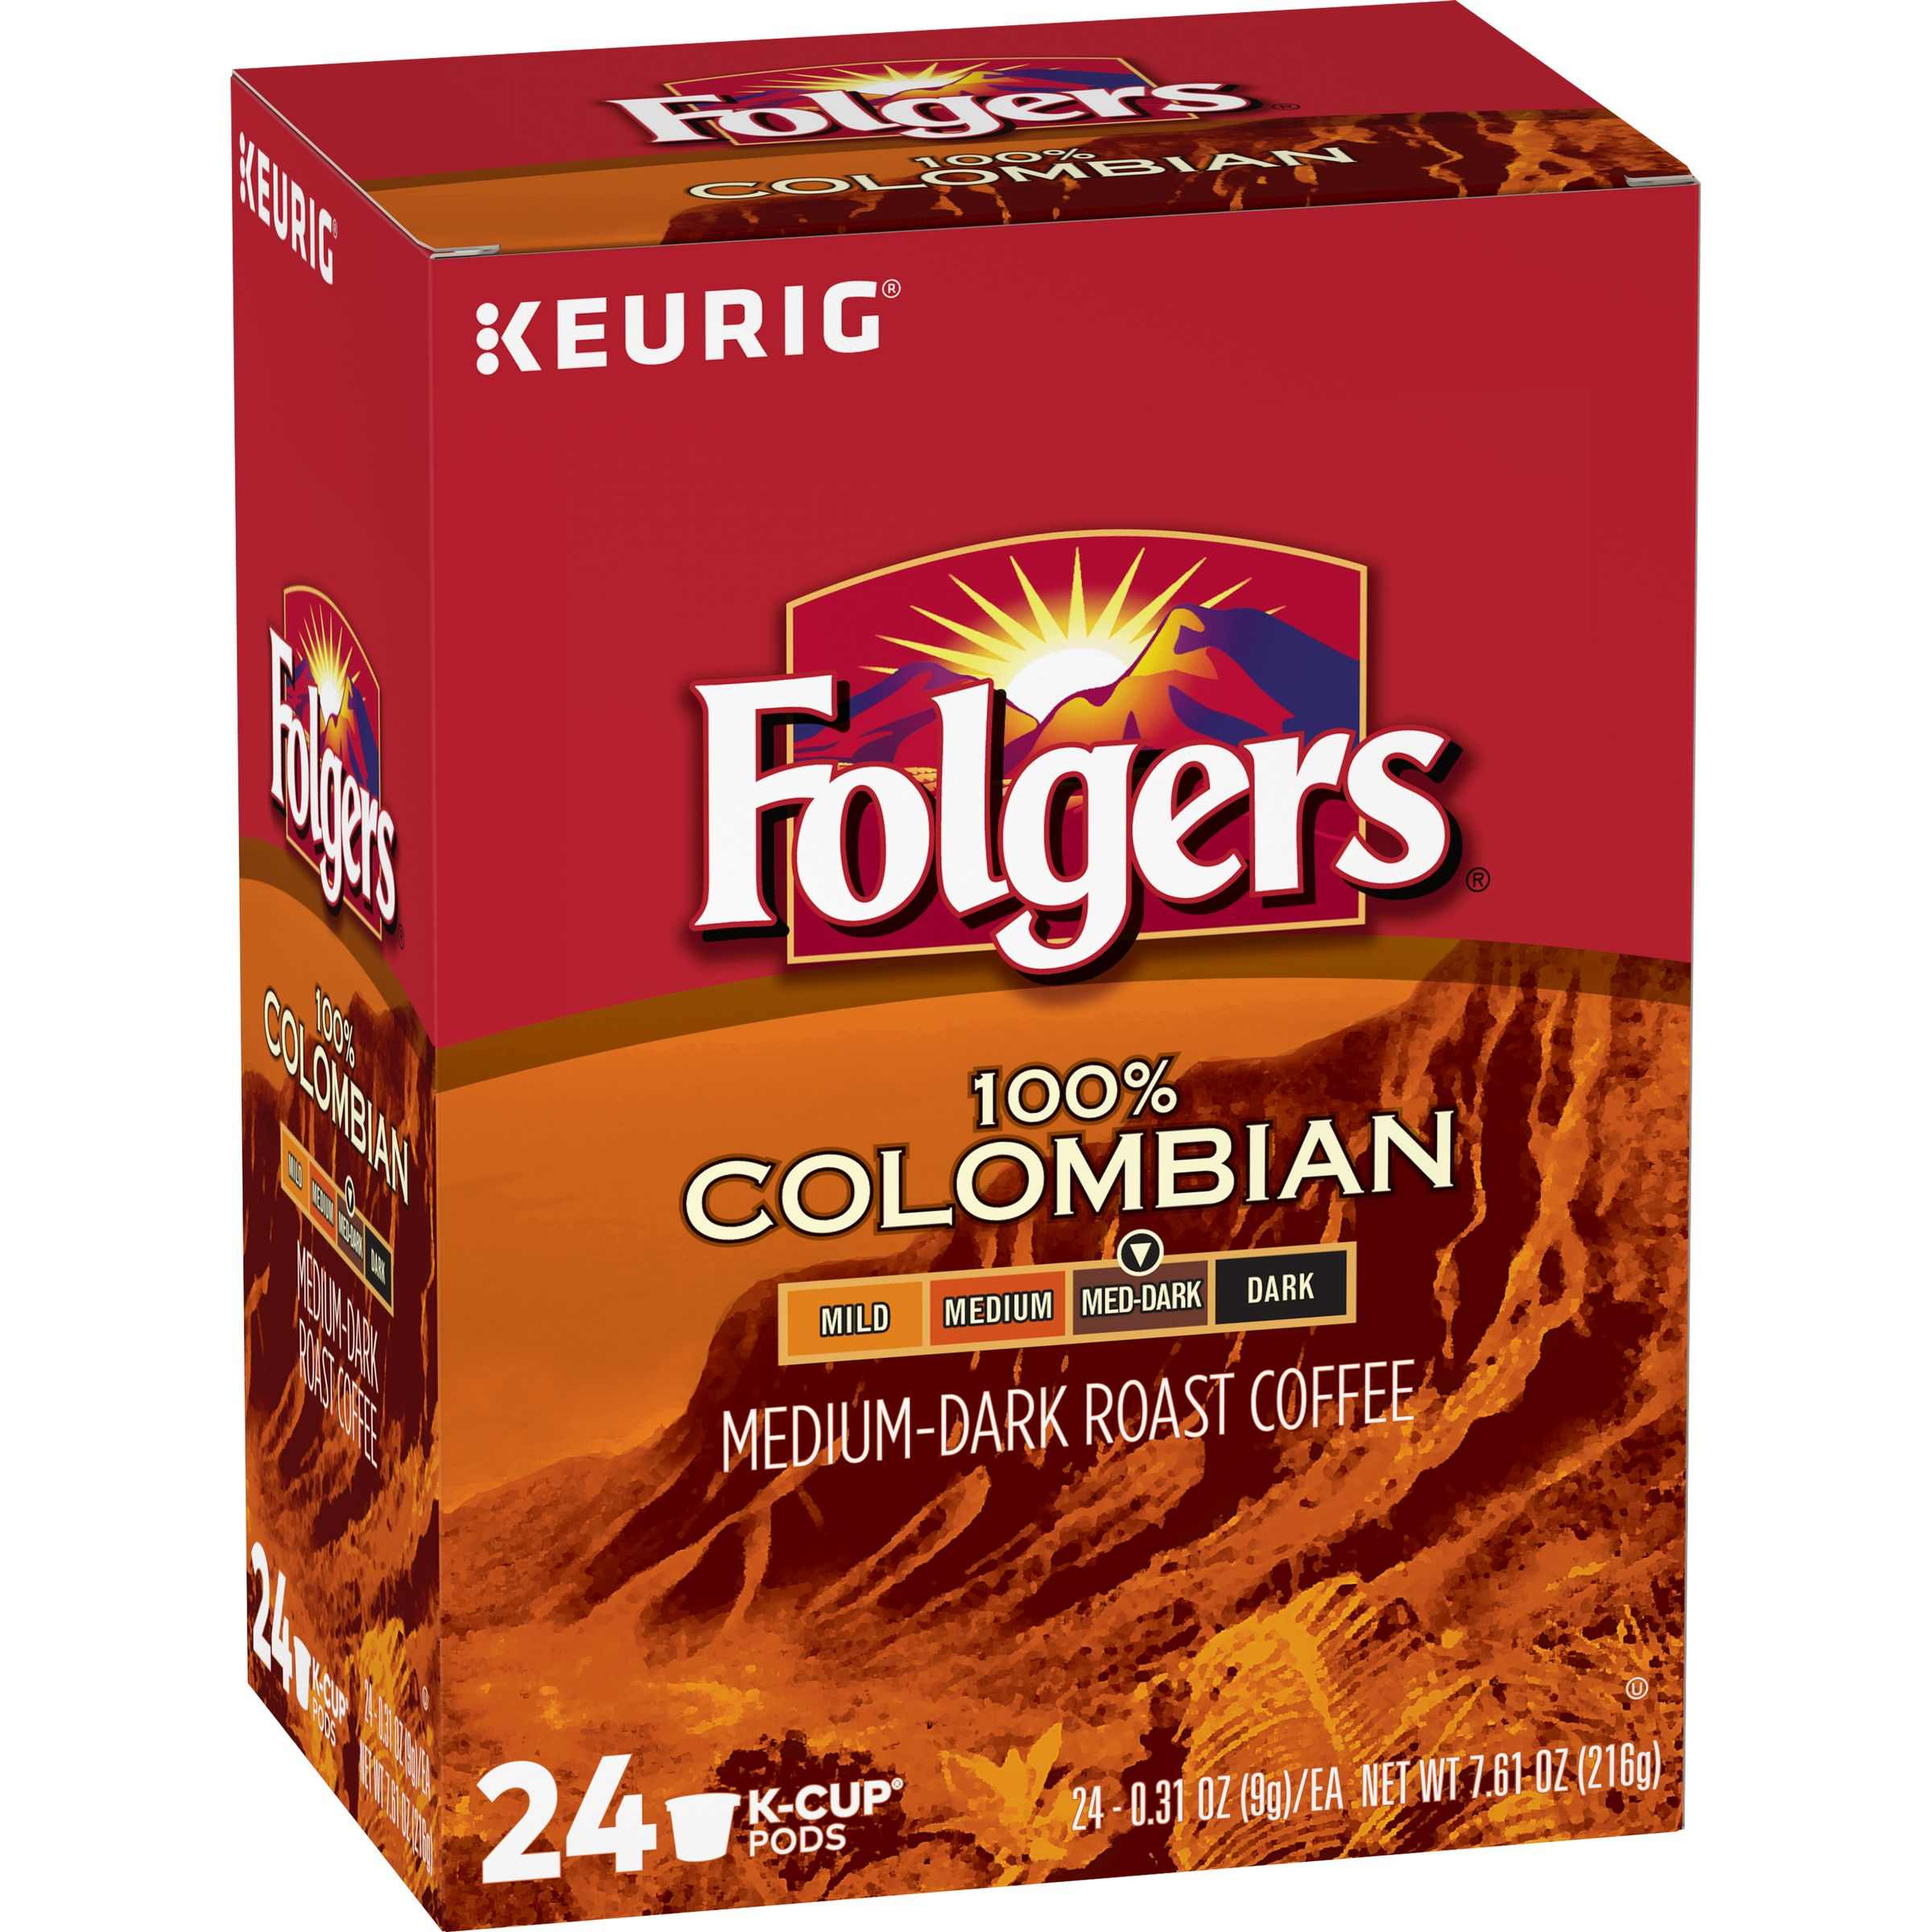 Folgers 100% Colombian, Medium Roast Coffee, K-Cup Pods, 24-Count